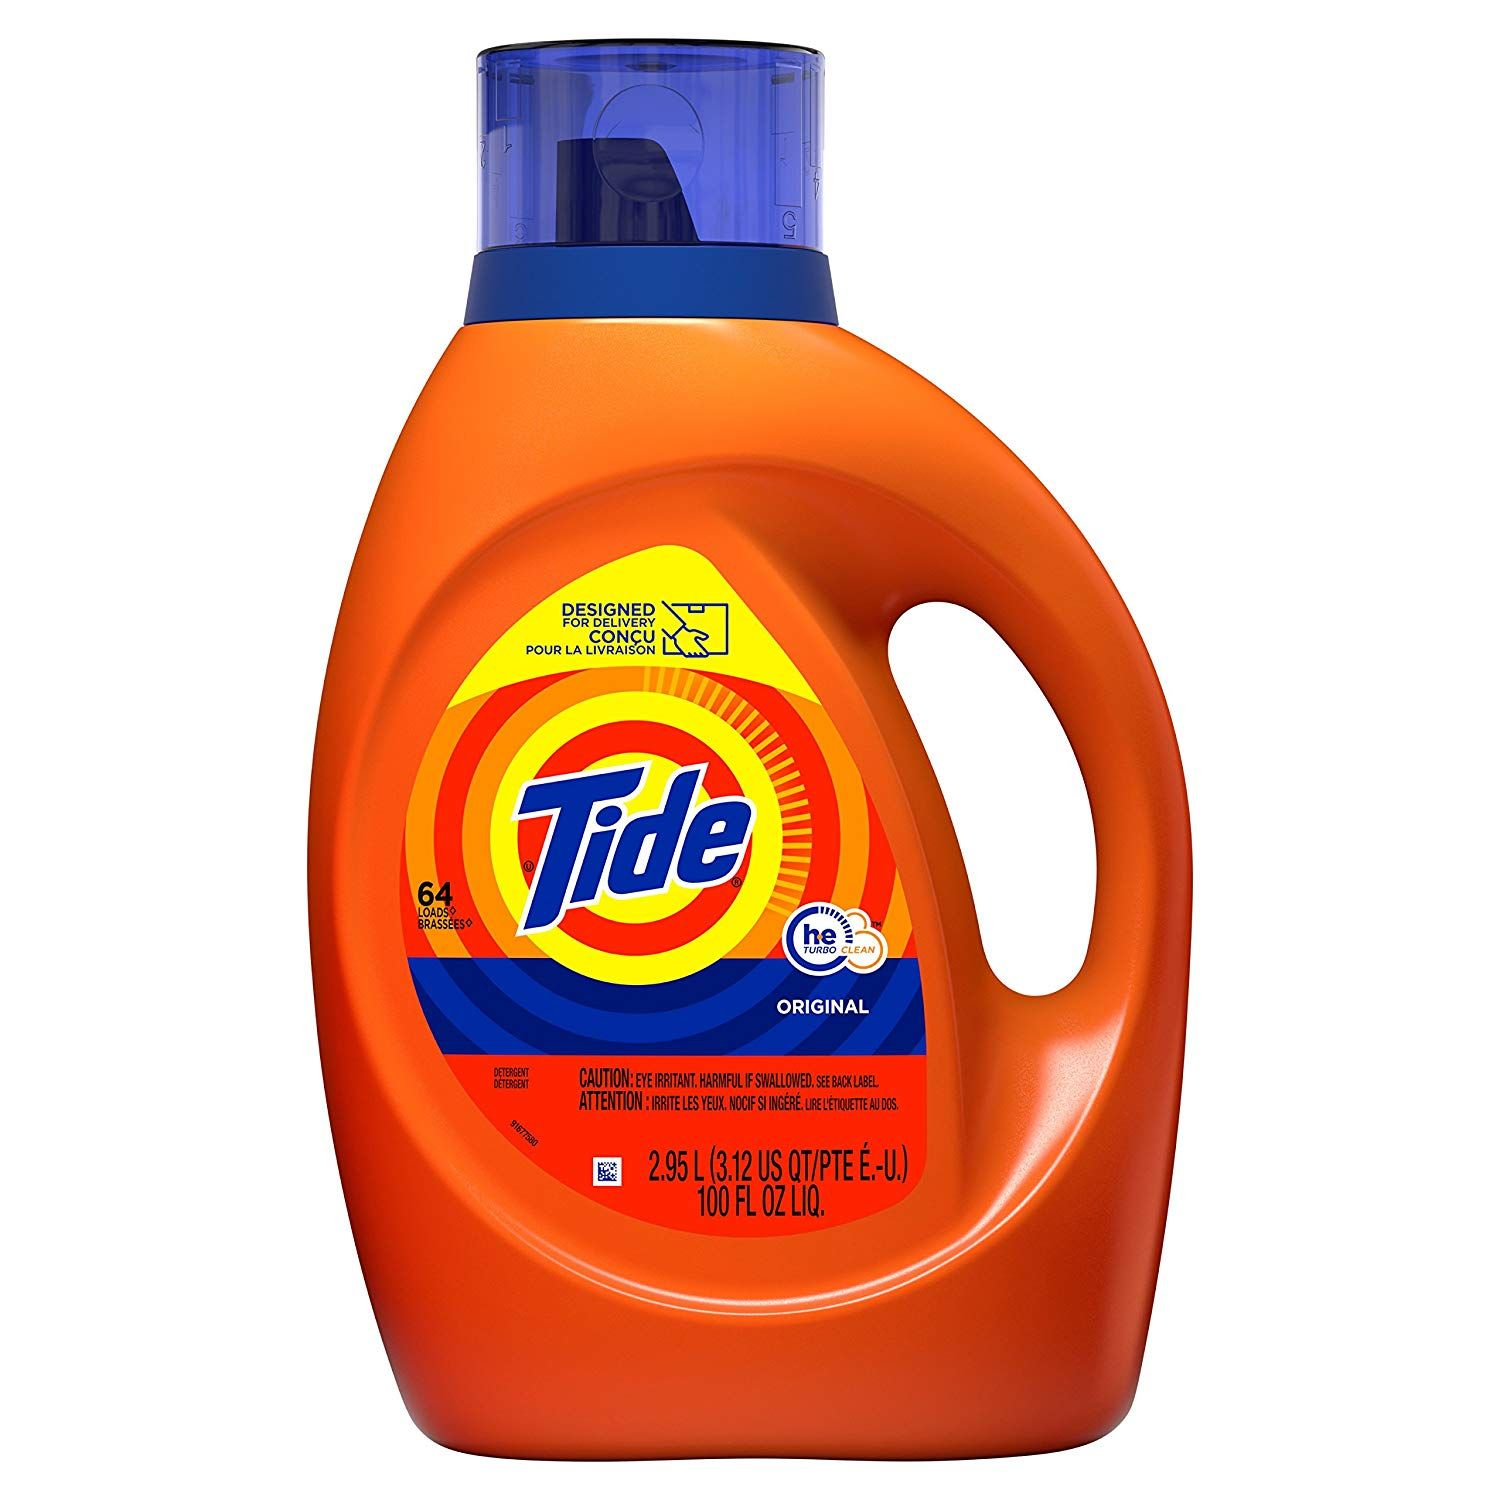 Tide Laundry Detergent Liquid Original Scent He Turbo Clean 100